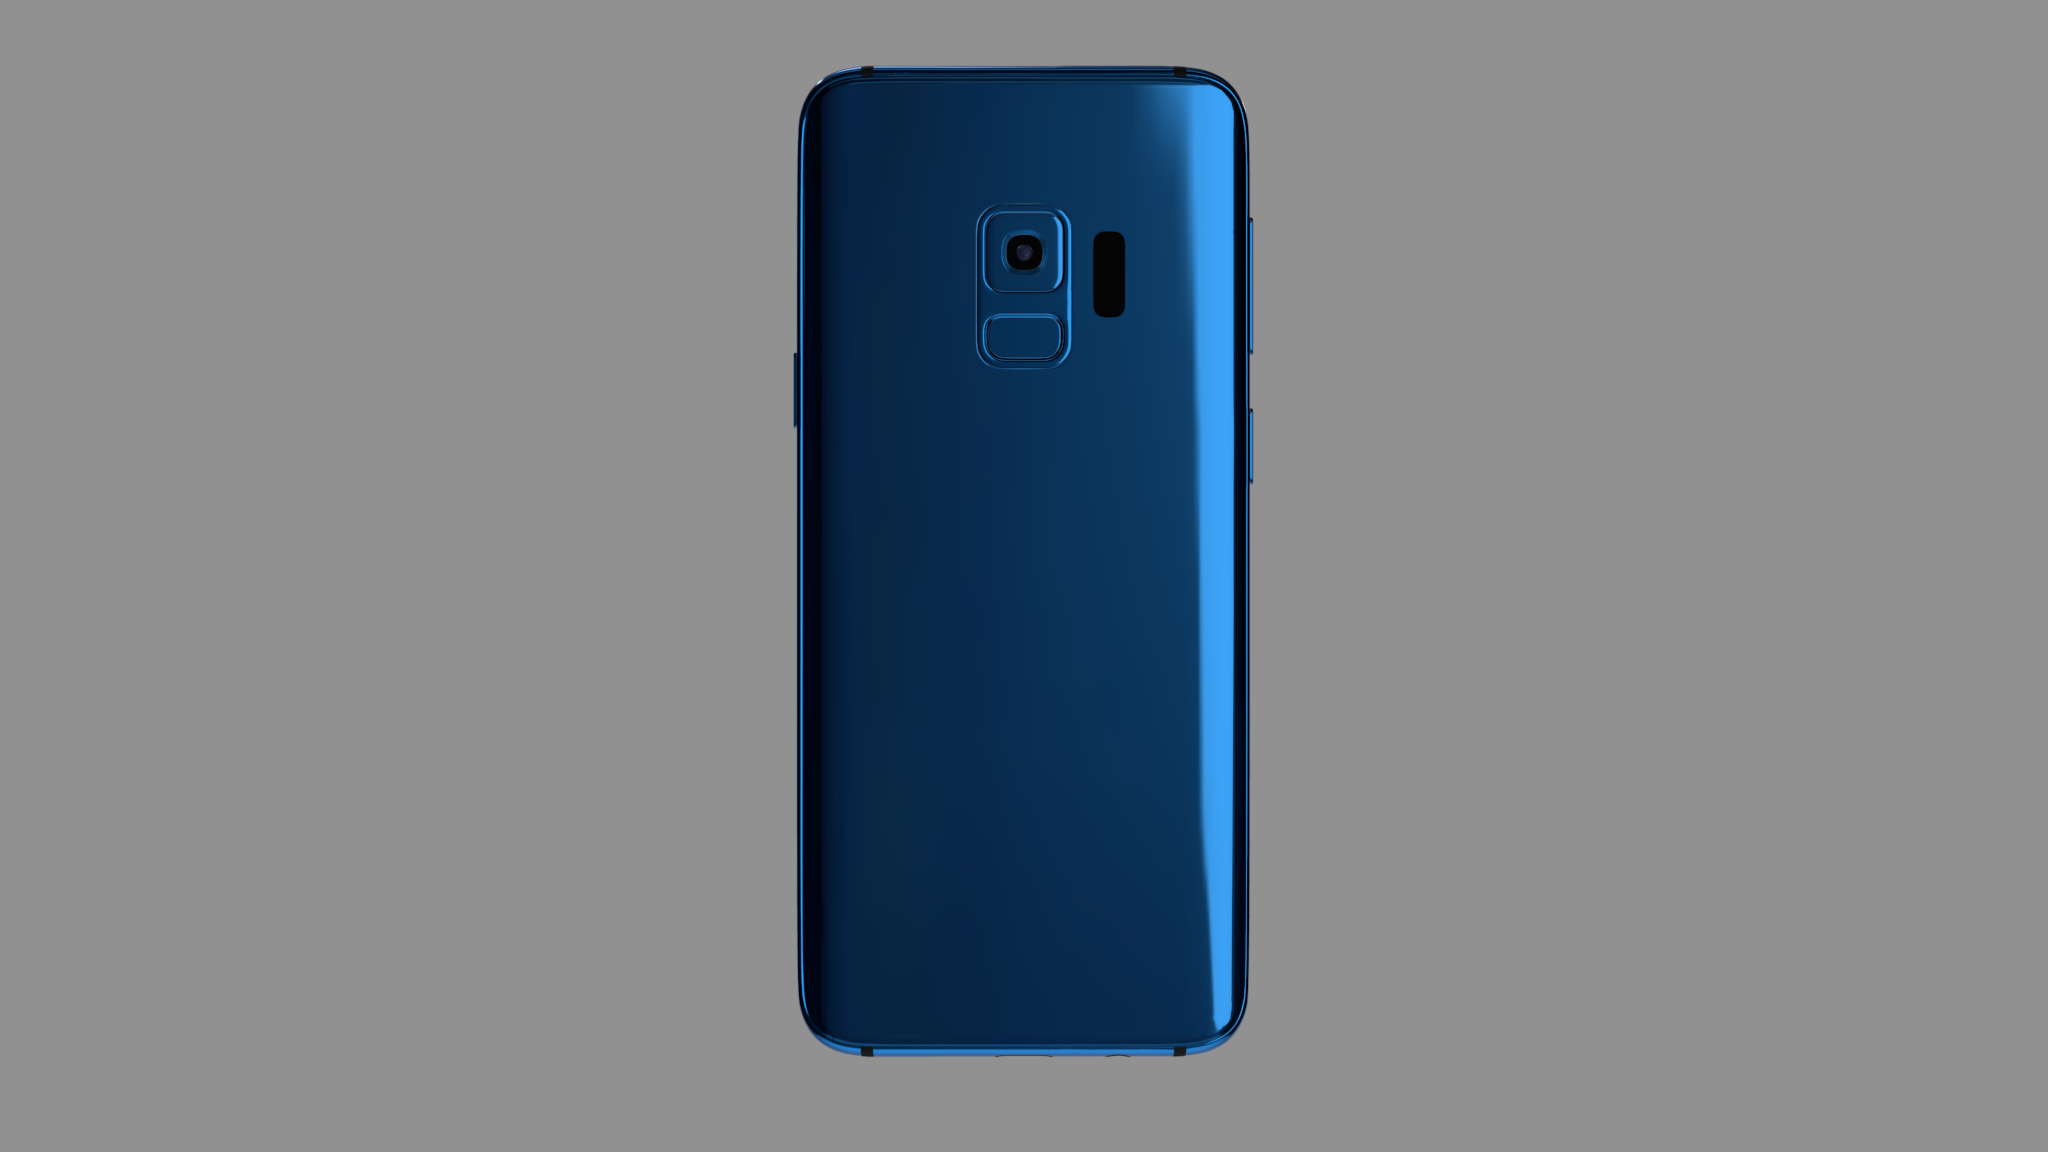 Blue colored Android phone mockup seen from the back